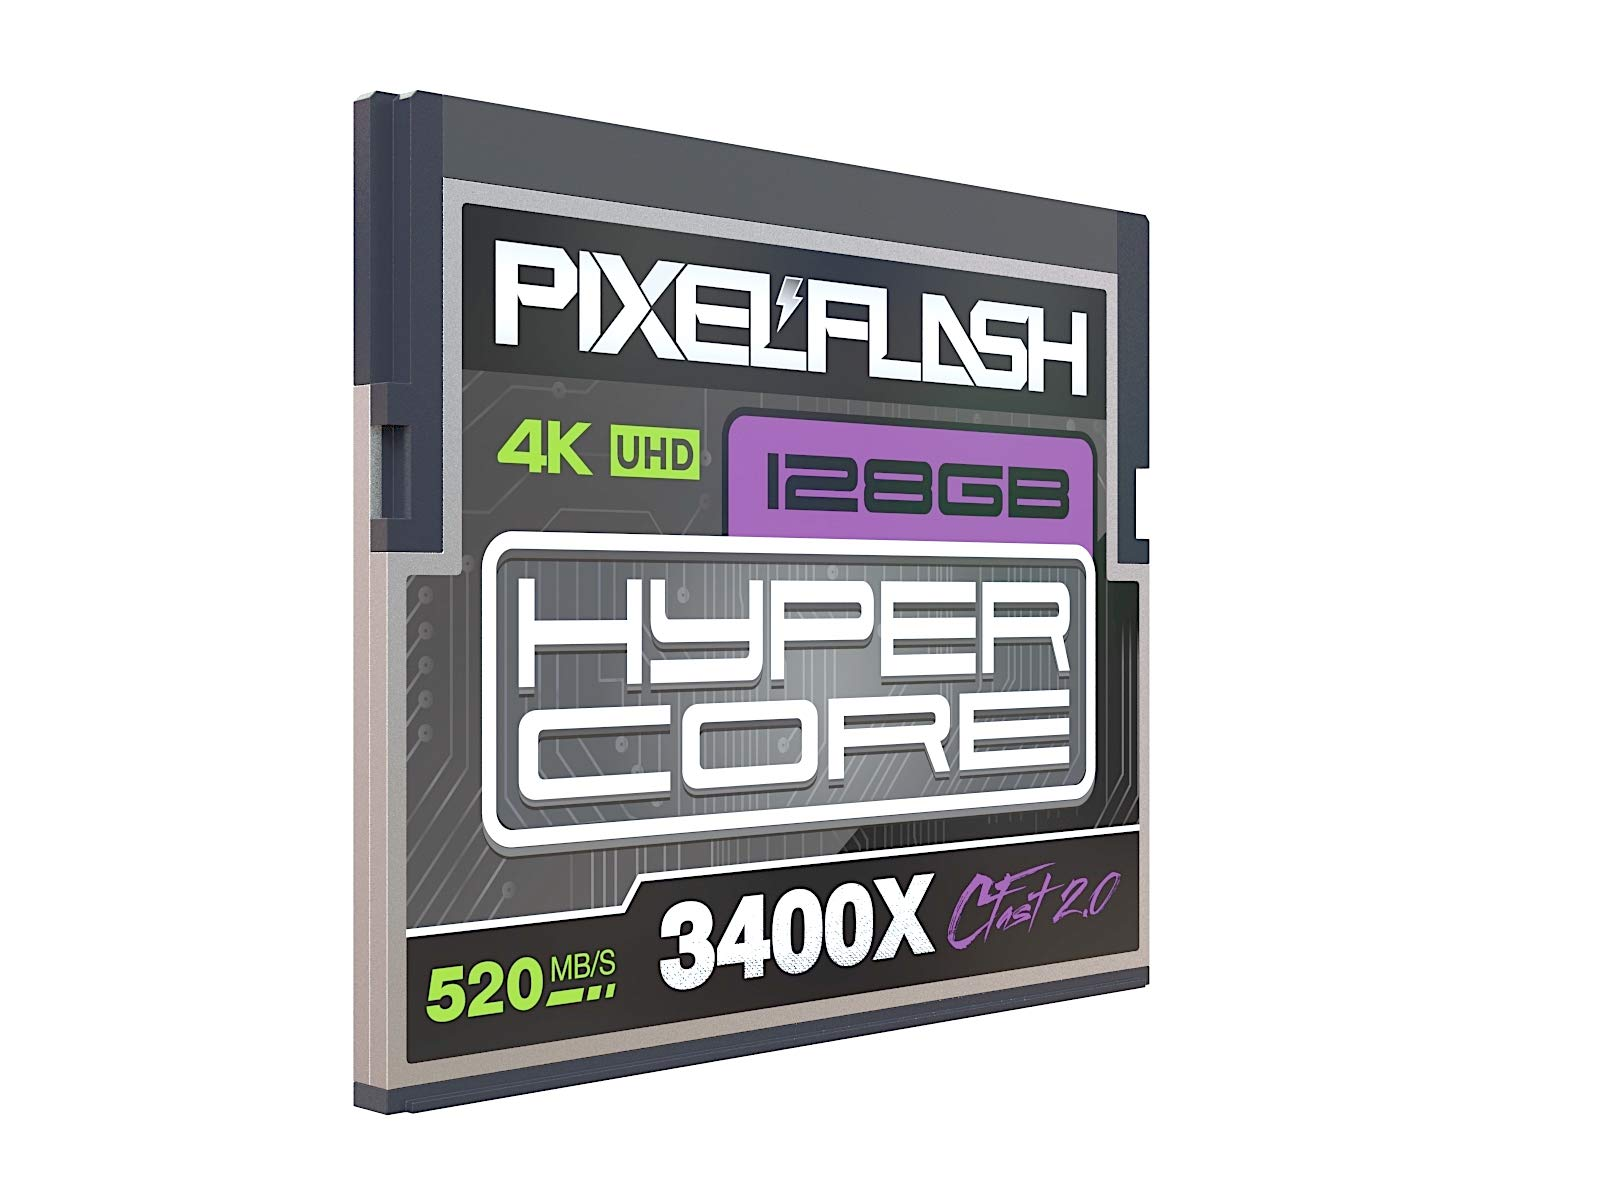 256GB PixelFlash Cfast 2.0 Memory Card 3400X Standard Version for Canon C300, XC10, XC15, Hasselblad, Blackmagic Cinema… 2 VIDEO PERFORMANCE GUARANTEE: 128GB CFast 2.0 from PixelFlash - VPG-90. FAST TRANSFER SPEED - 520 Mb/s Read up to 520Mb/s Write 3400x Memory Speed - Best bang for your buck! DSI(TM) LABORATORY CERTIFIED FLASH MEMORY: 100% Free of Errors and Defects - Never receive a faulty memory card again!